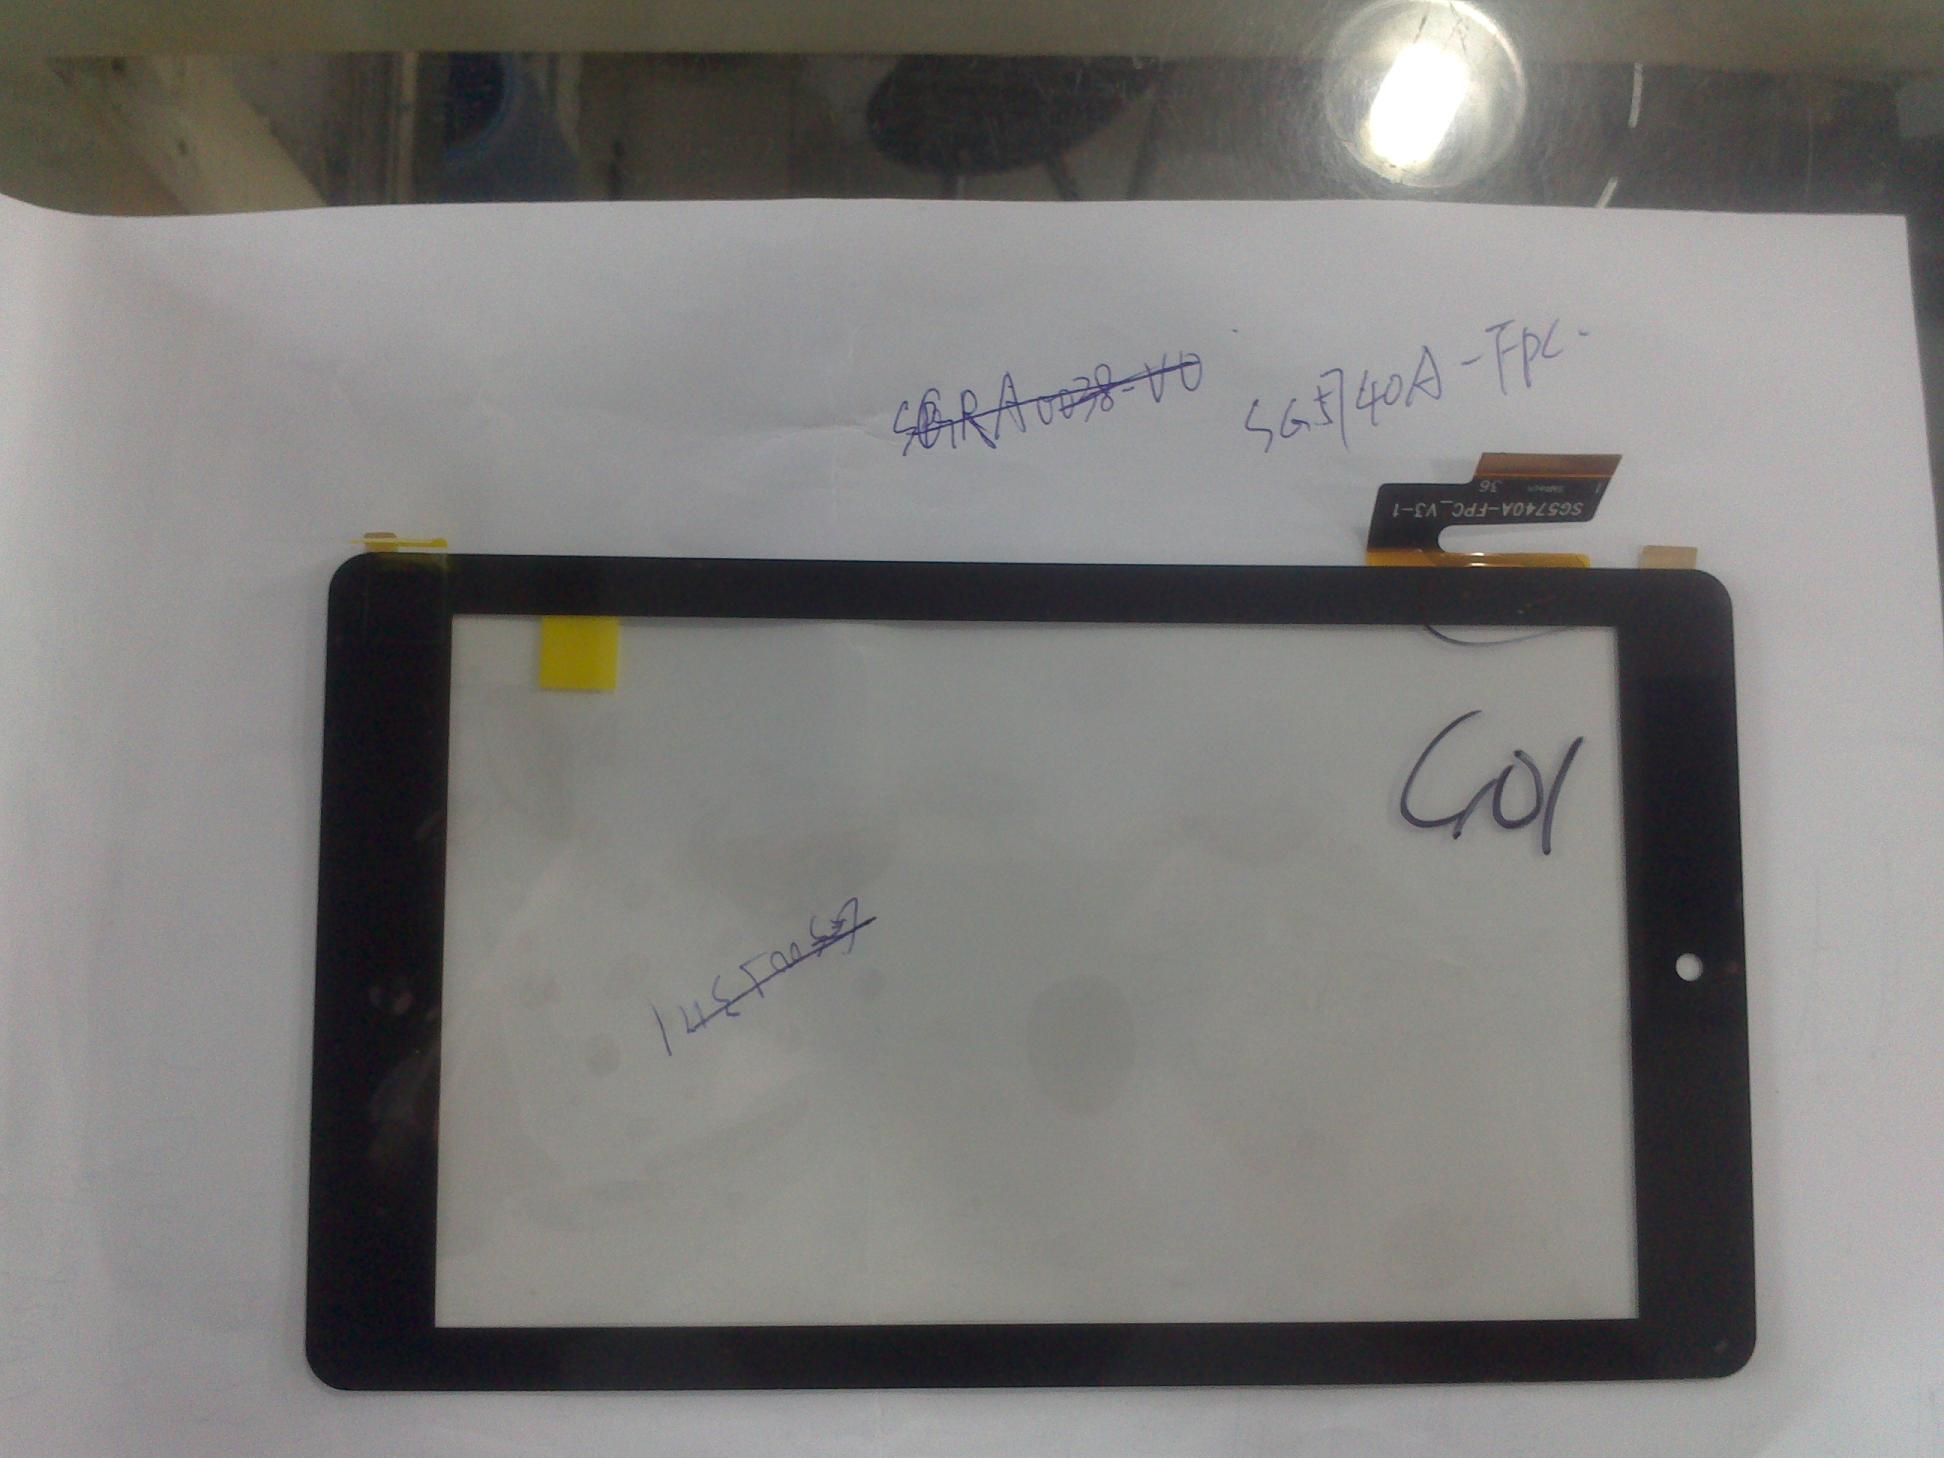 Запчасти для мобильных телефонов 7 inch new handwriting Tablet capacitive touch screen screen screen number is sg5740a/fpc_v3/1 SG5740A-FPC_V3-1 car toggle switch with red led indicator dc 12v vehicle diy